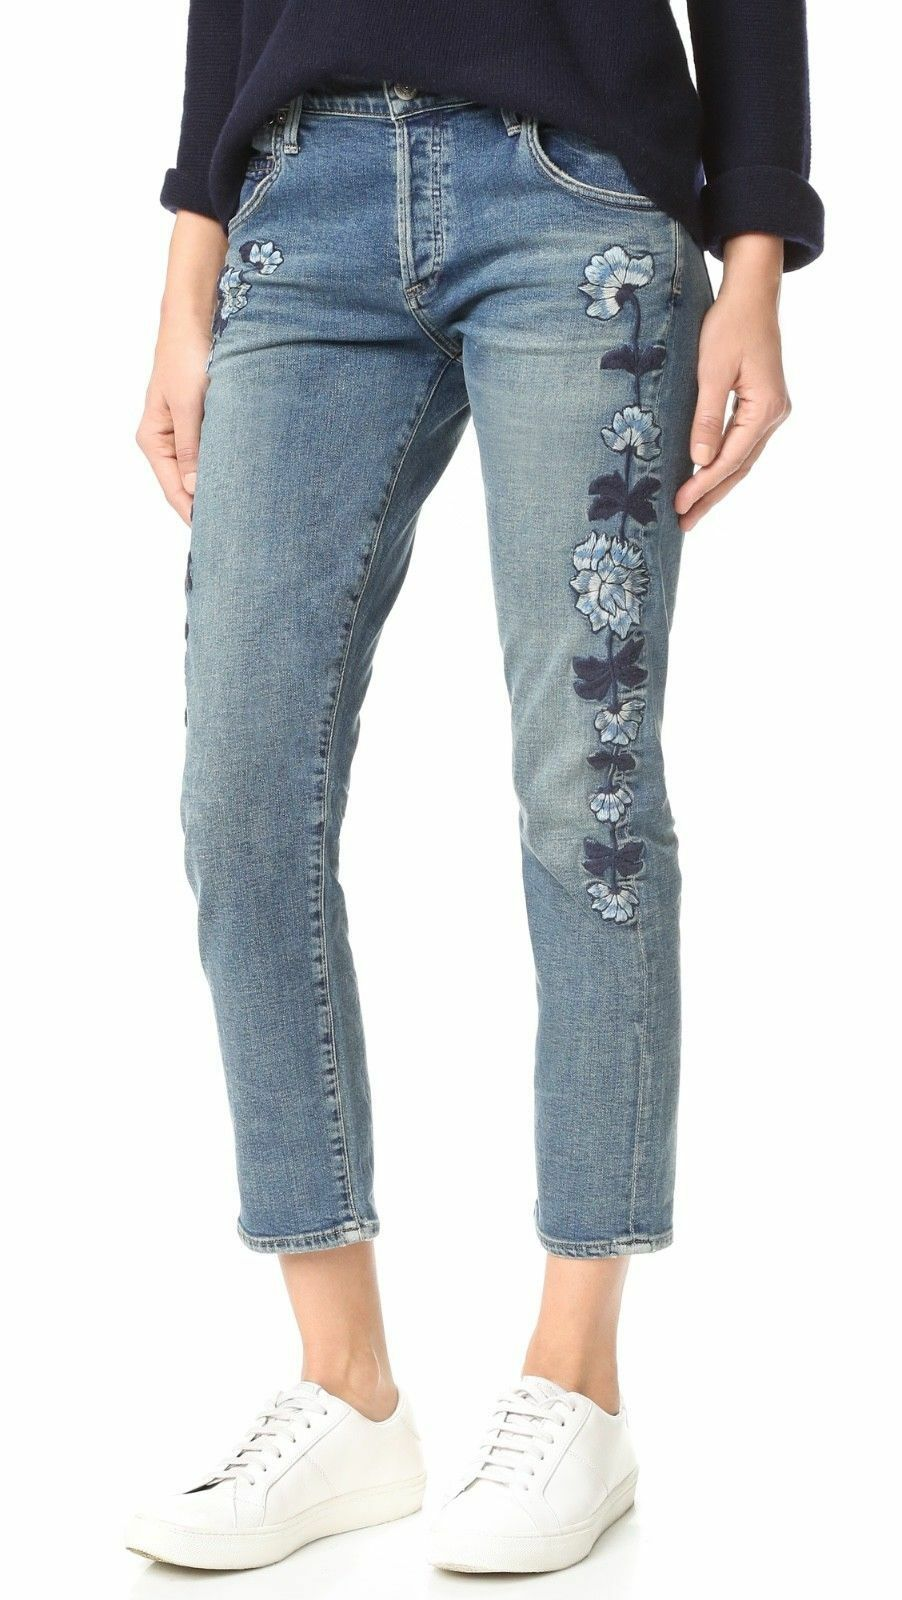 298 Citizens of Humanity Emerson Slim Boyfriend in Western pinks Embroidery 26